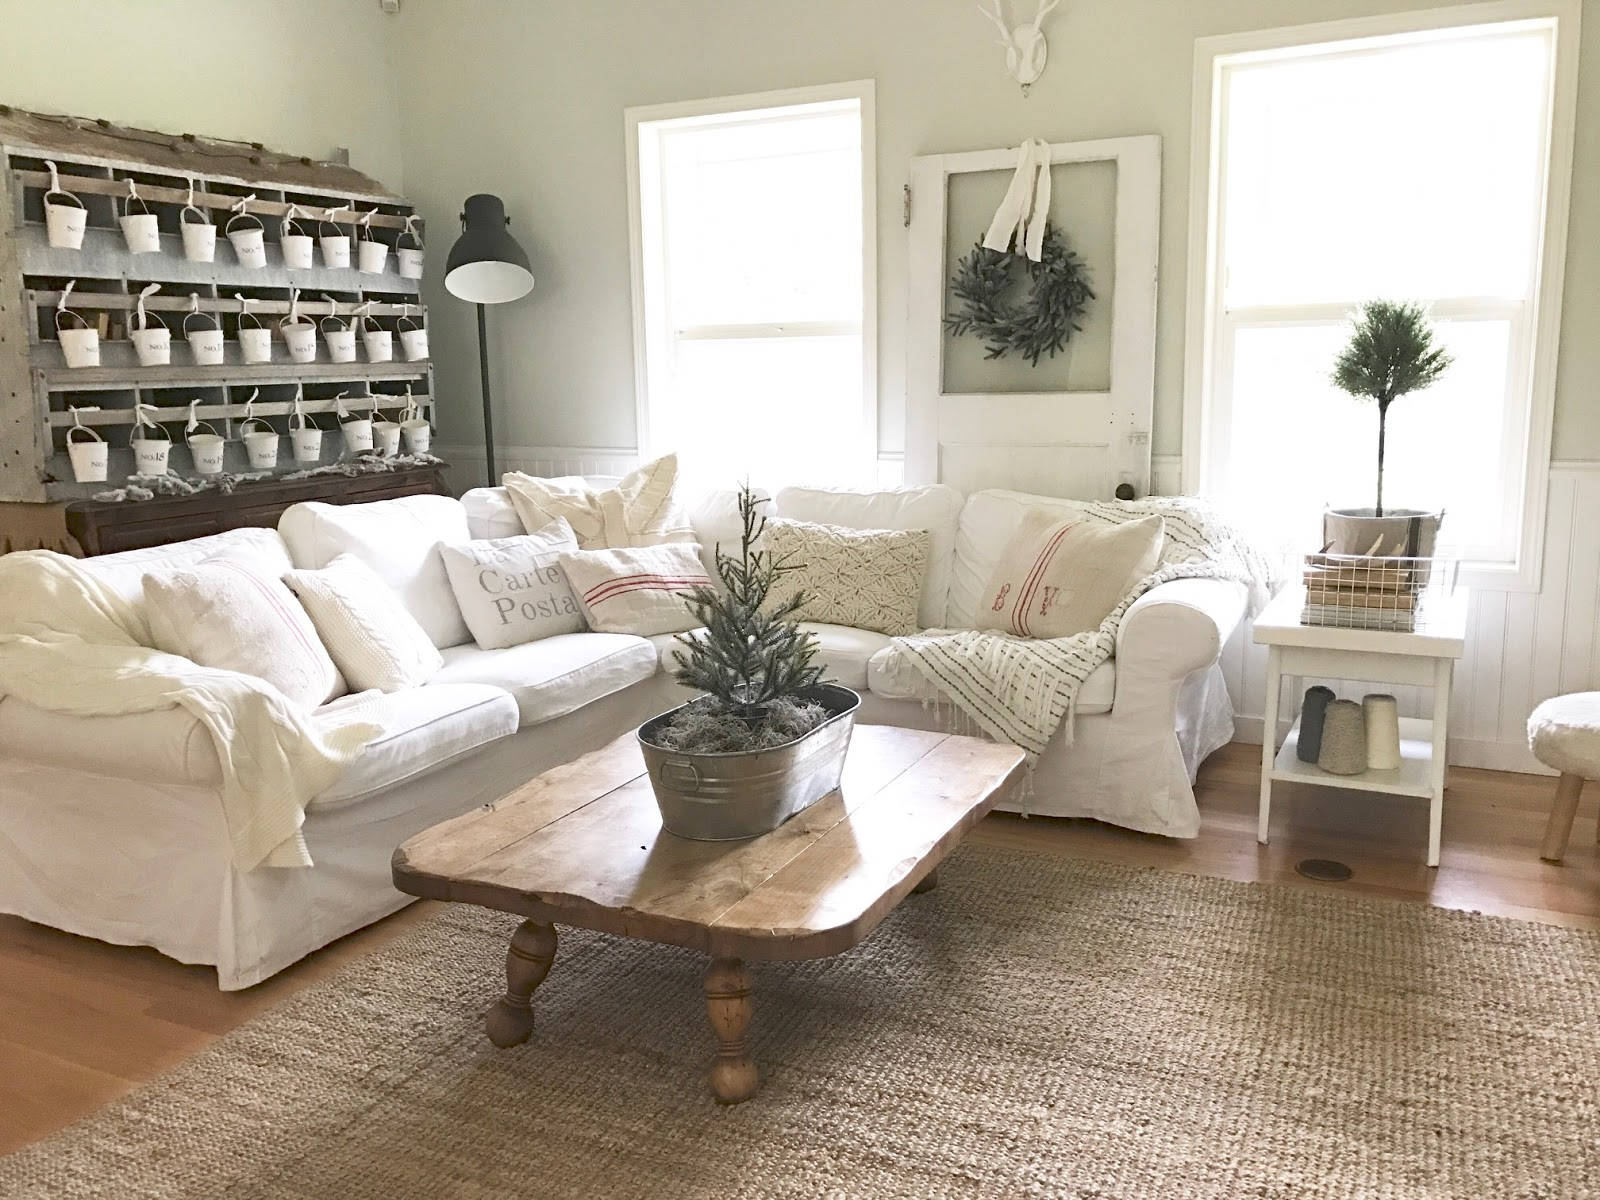 How To Decorate Small Family Room For Christmas